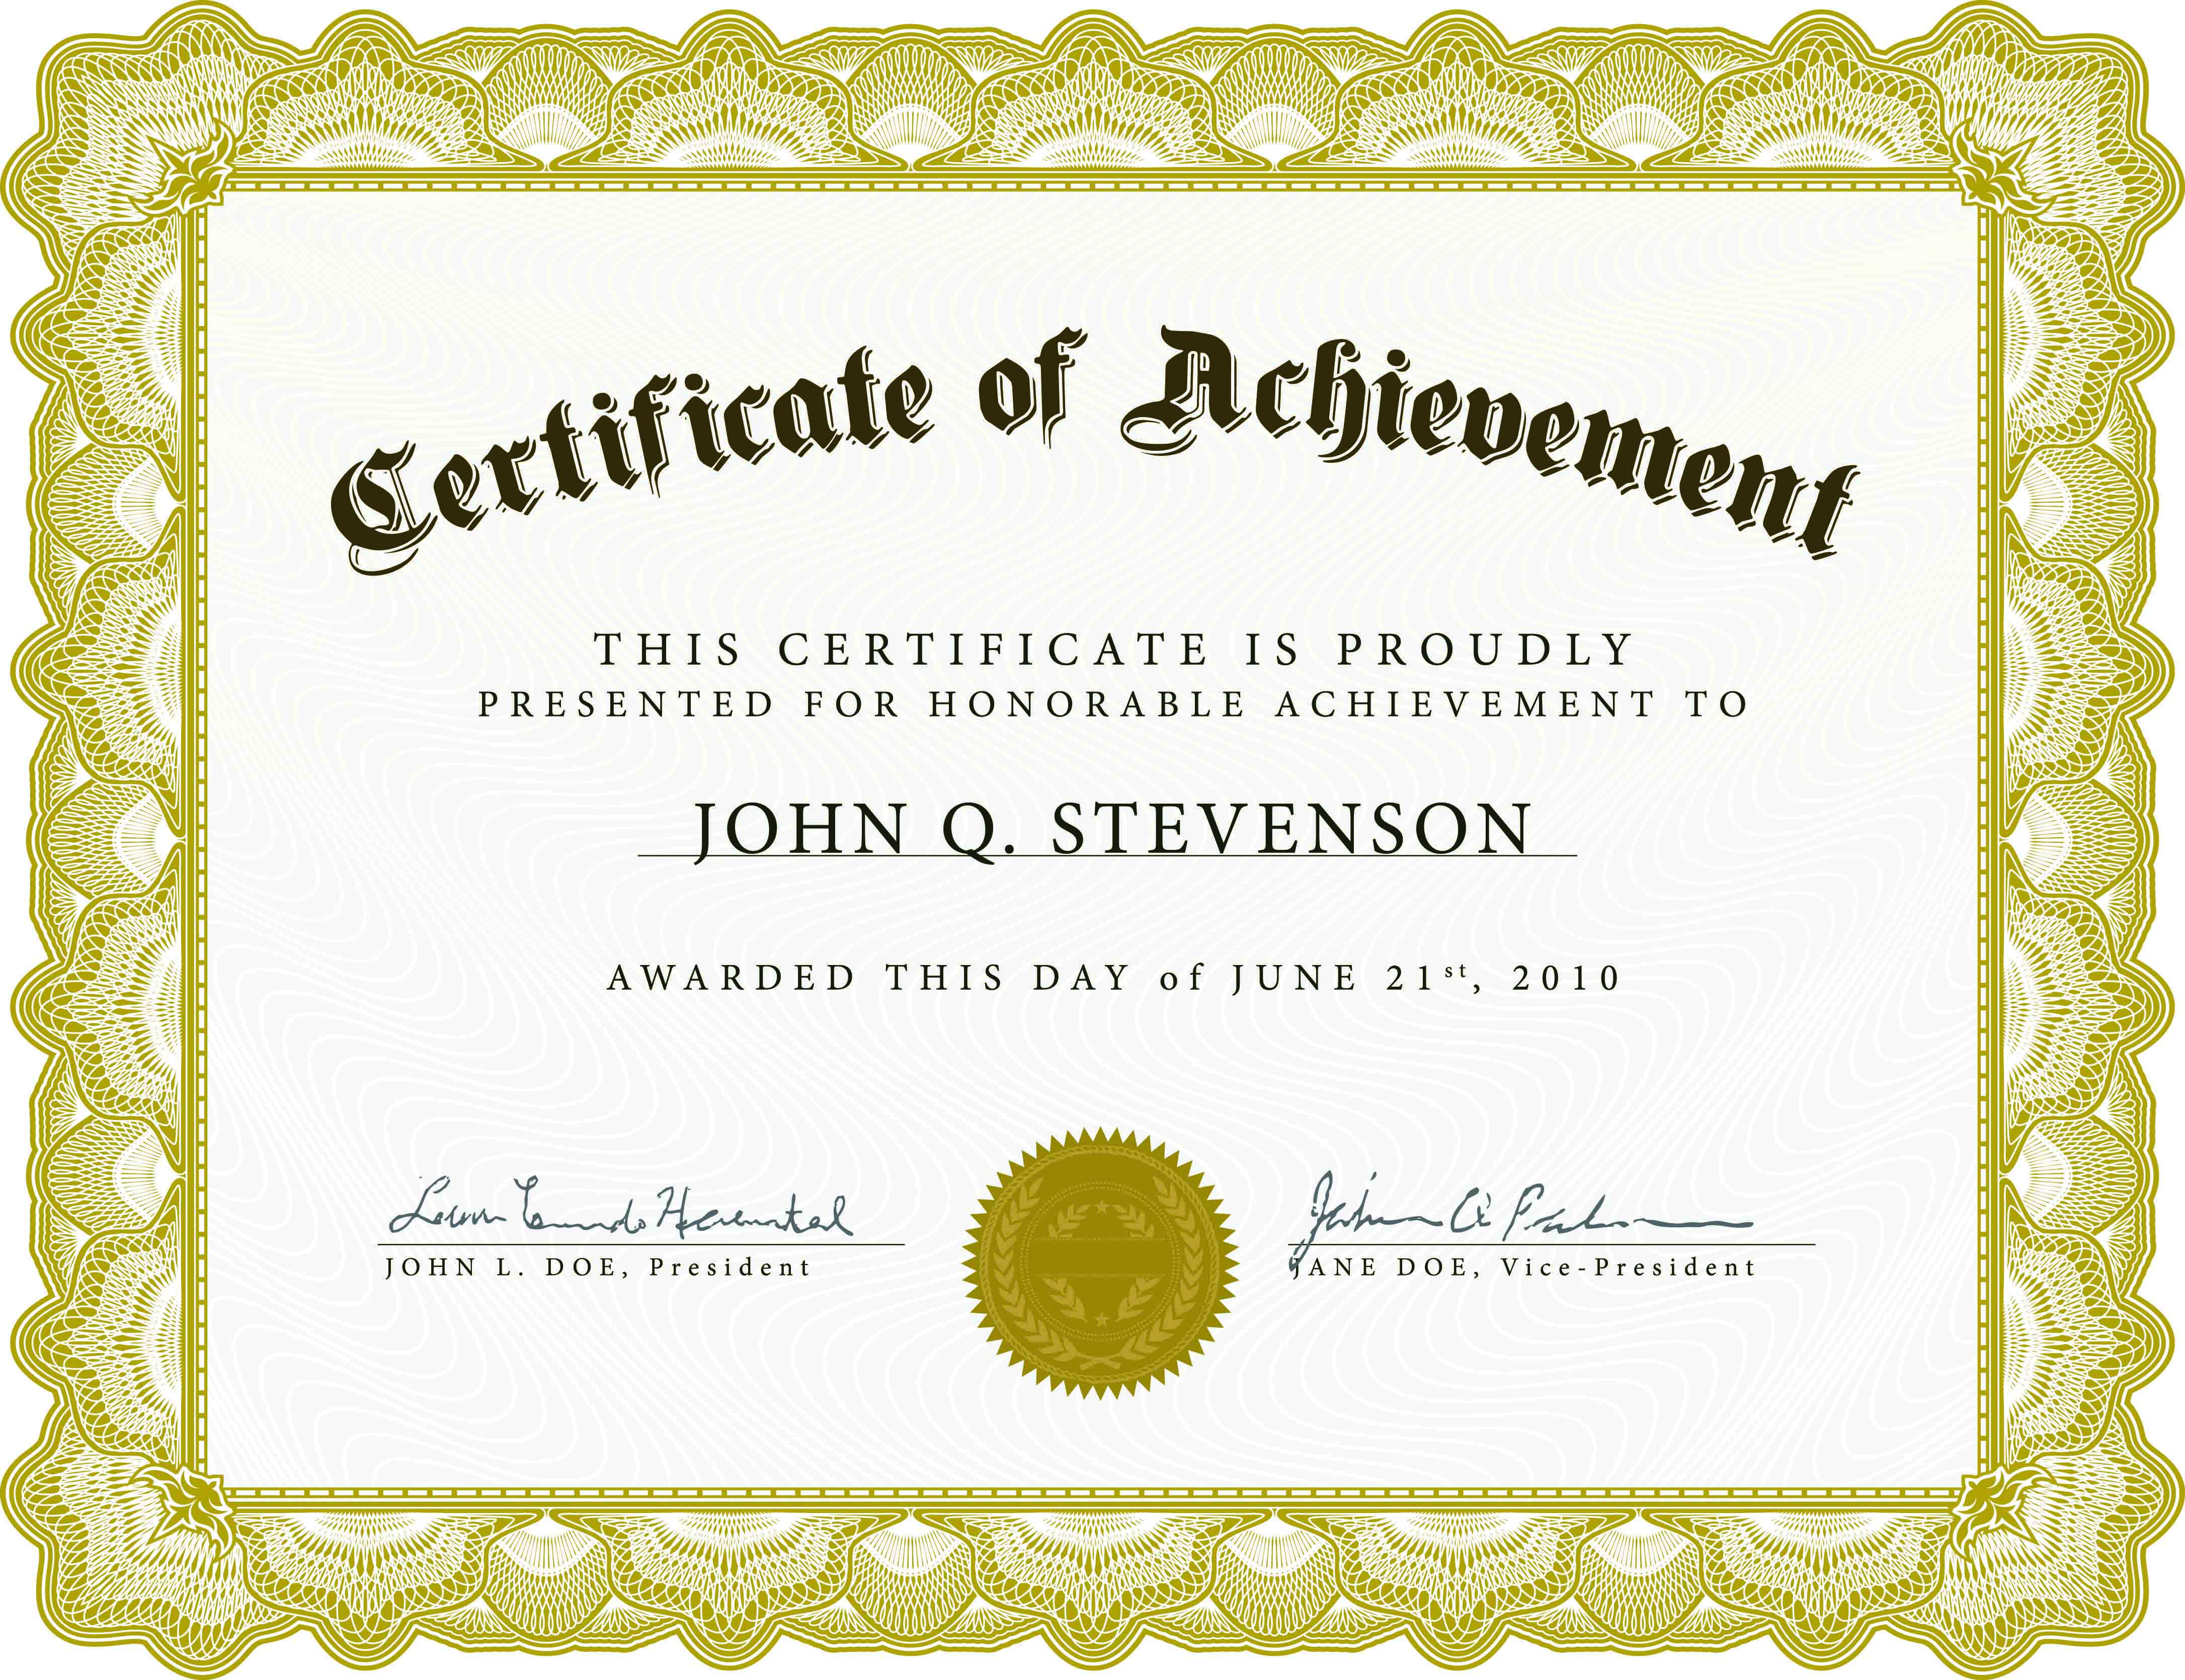 Download Blank Certificate Template X3Hr9Dto   St. Gabriel's Youth - Free Printable Blank Certificate Templates